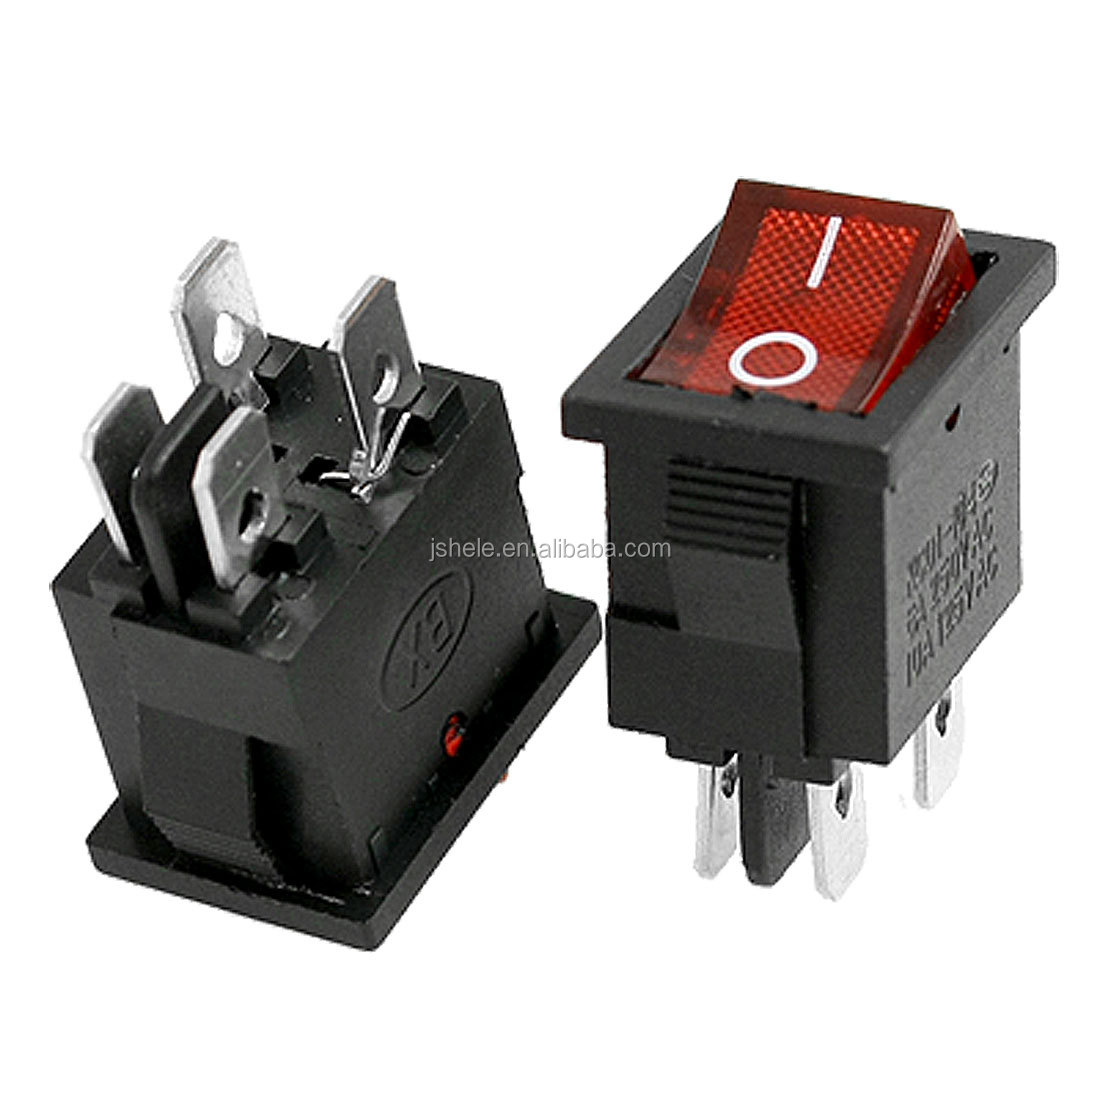 Electric Rocker Switches, Electric Rocker Switches Suppliers and ...